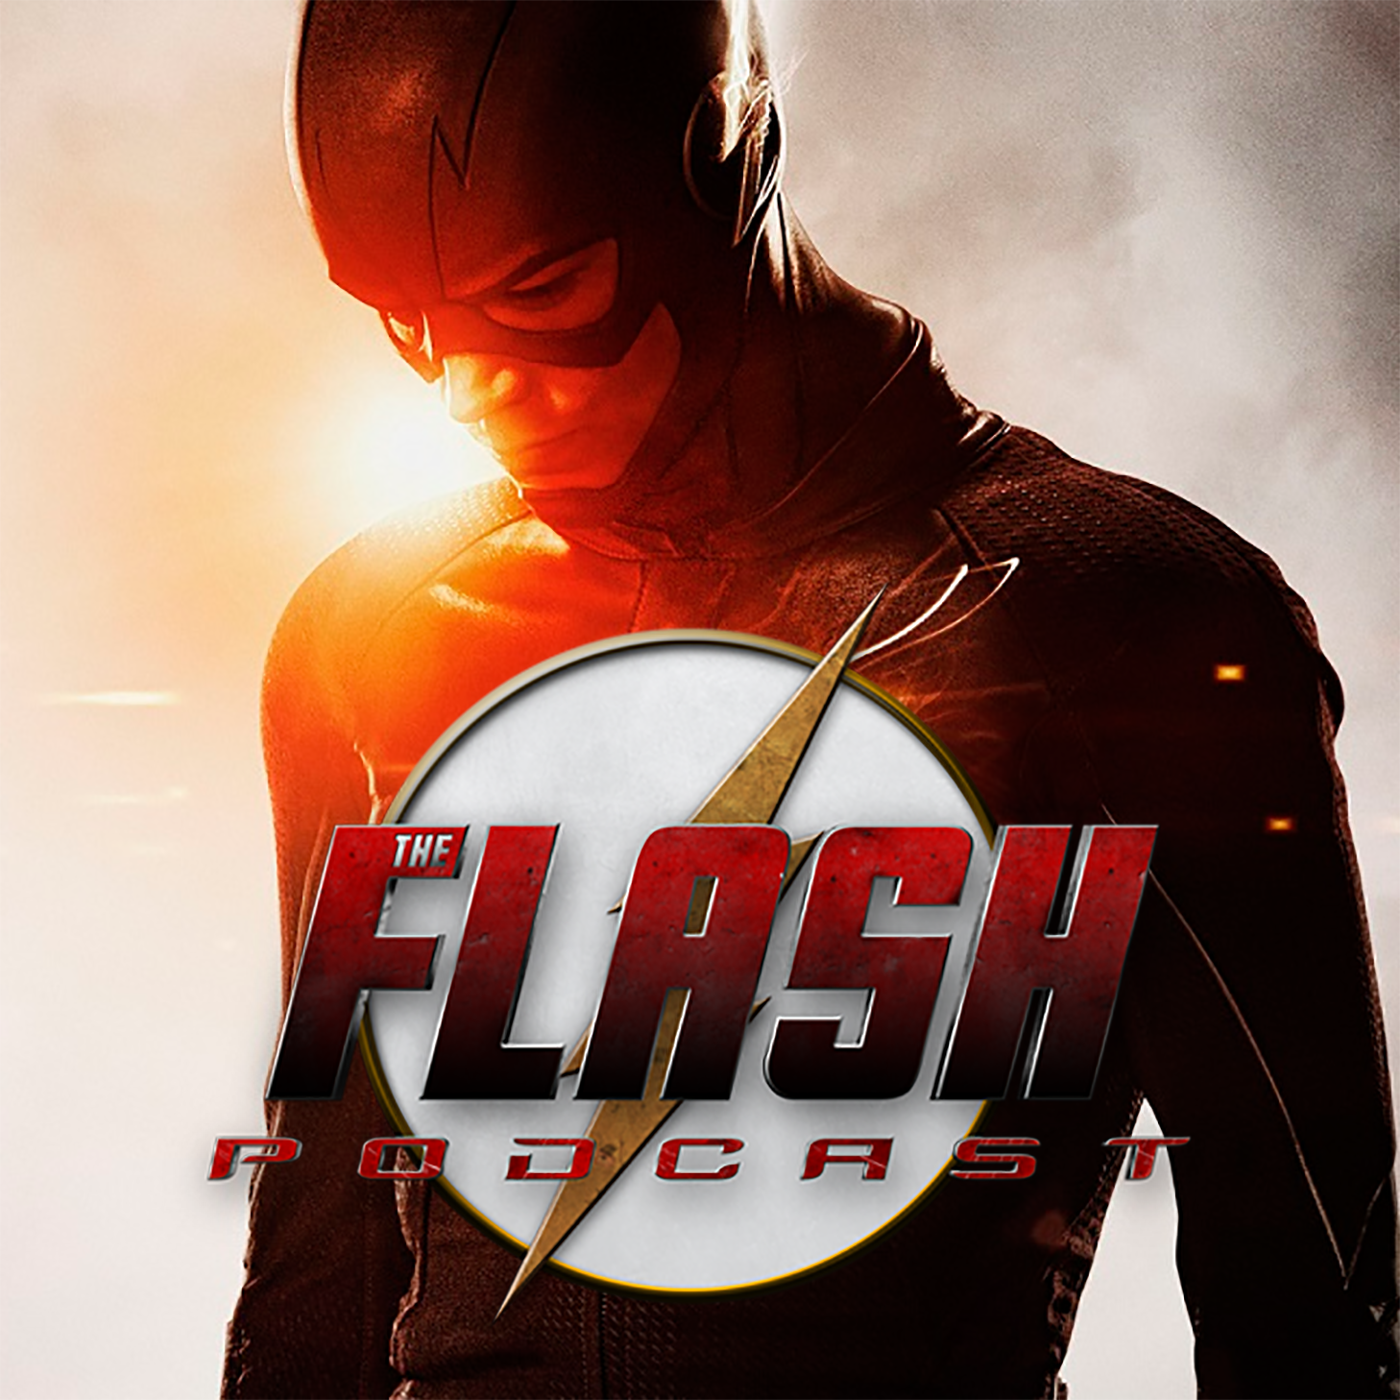 The Flash Podcast Season 1.5 - Firestorm in Season 1